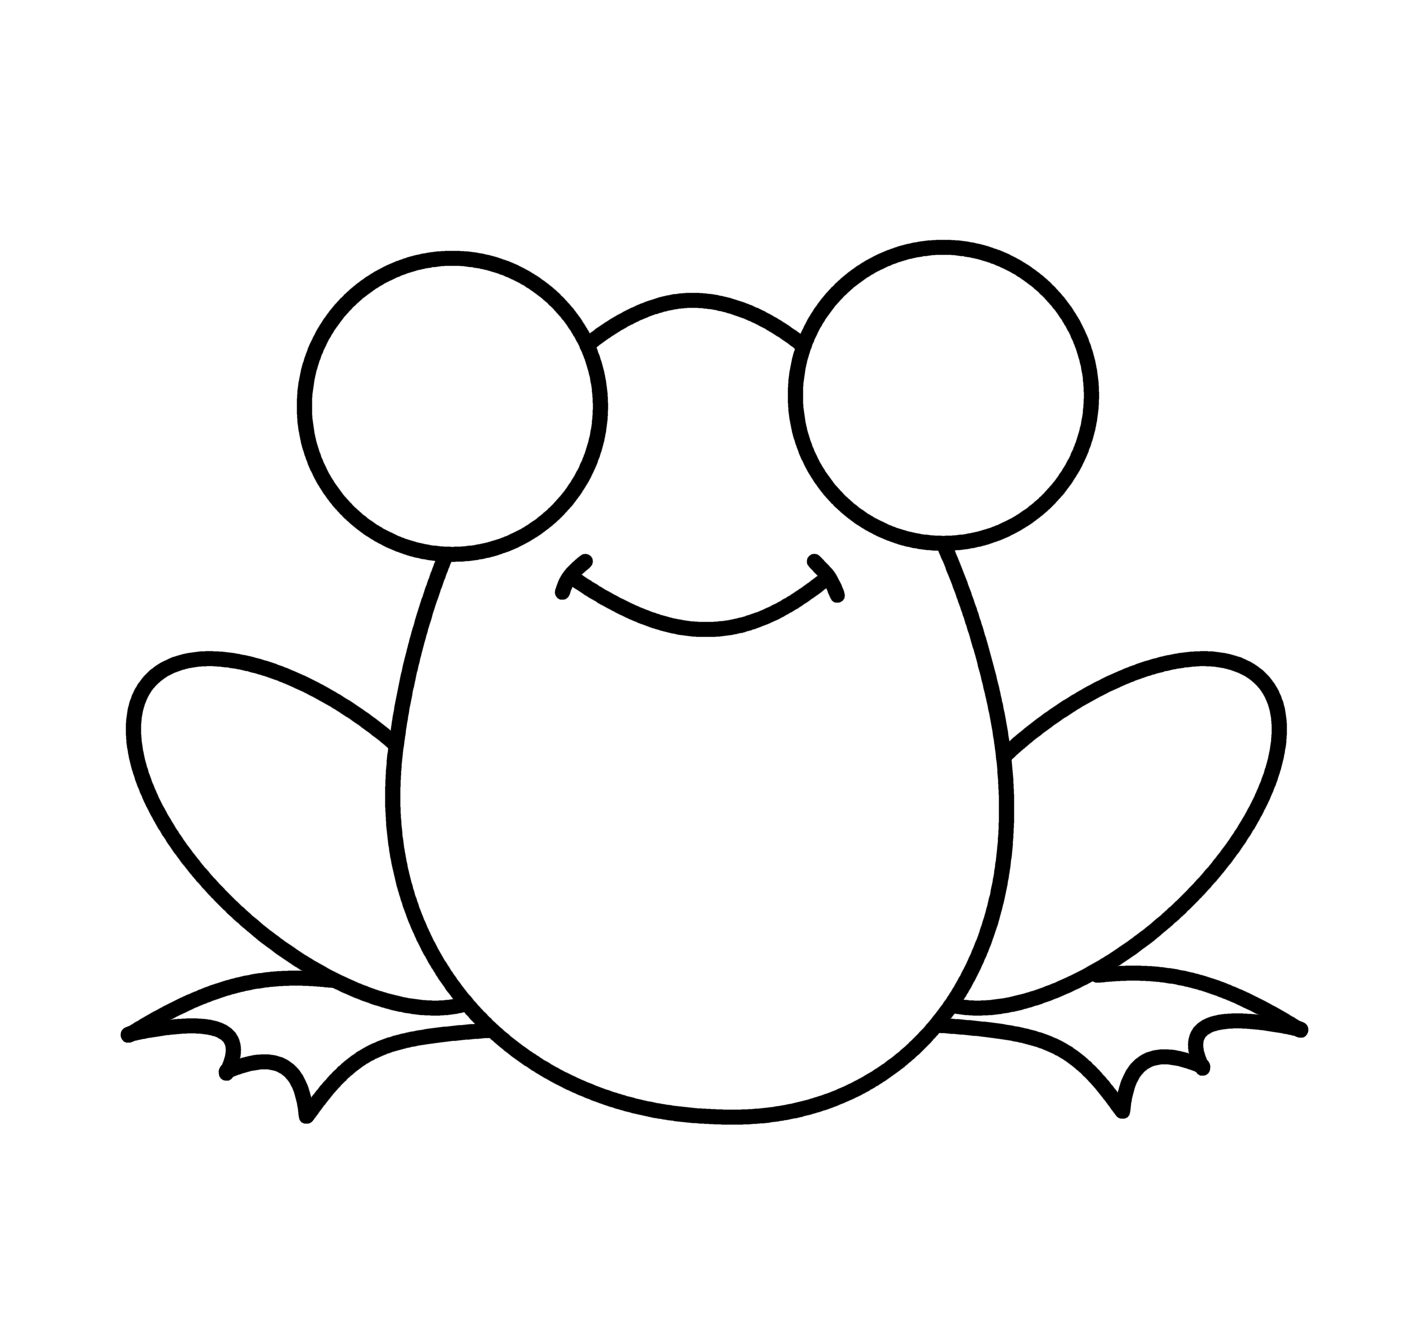 How To Draw Cartoons Frog Charter Cakes Pinterest Easy